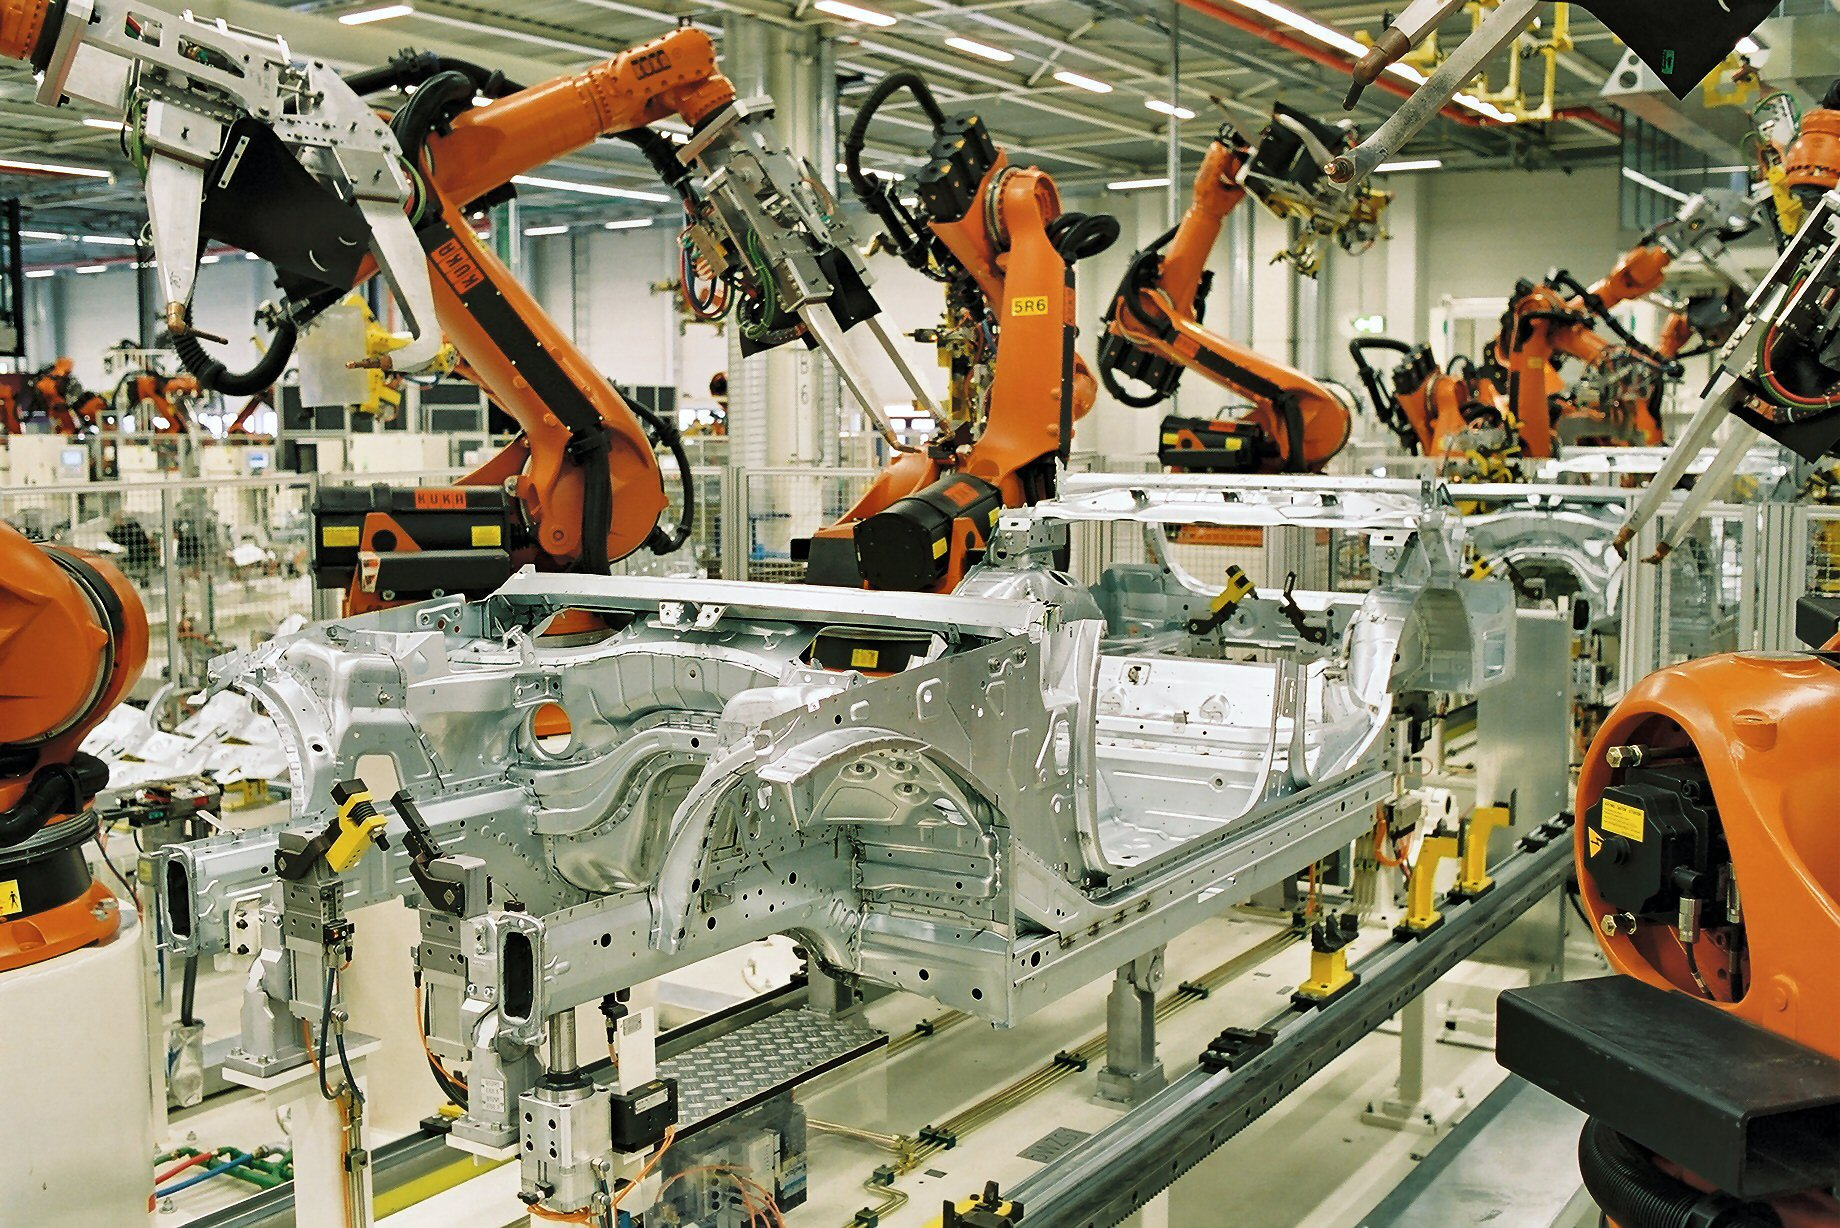 Bolstering Industrial Cyber Security in the Age of IoT